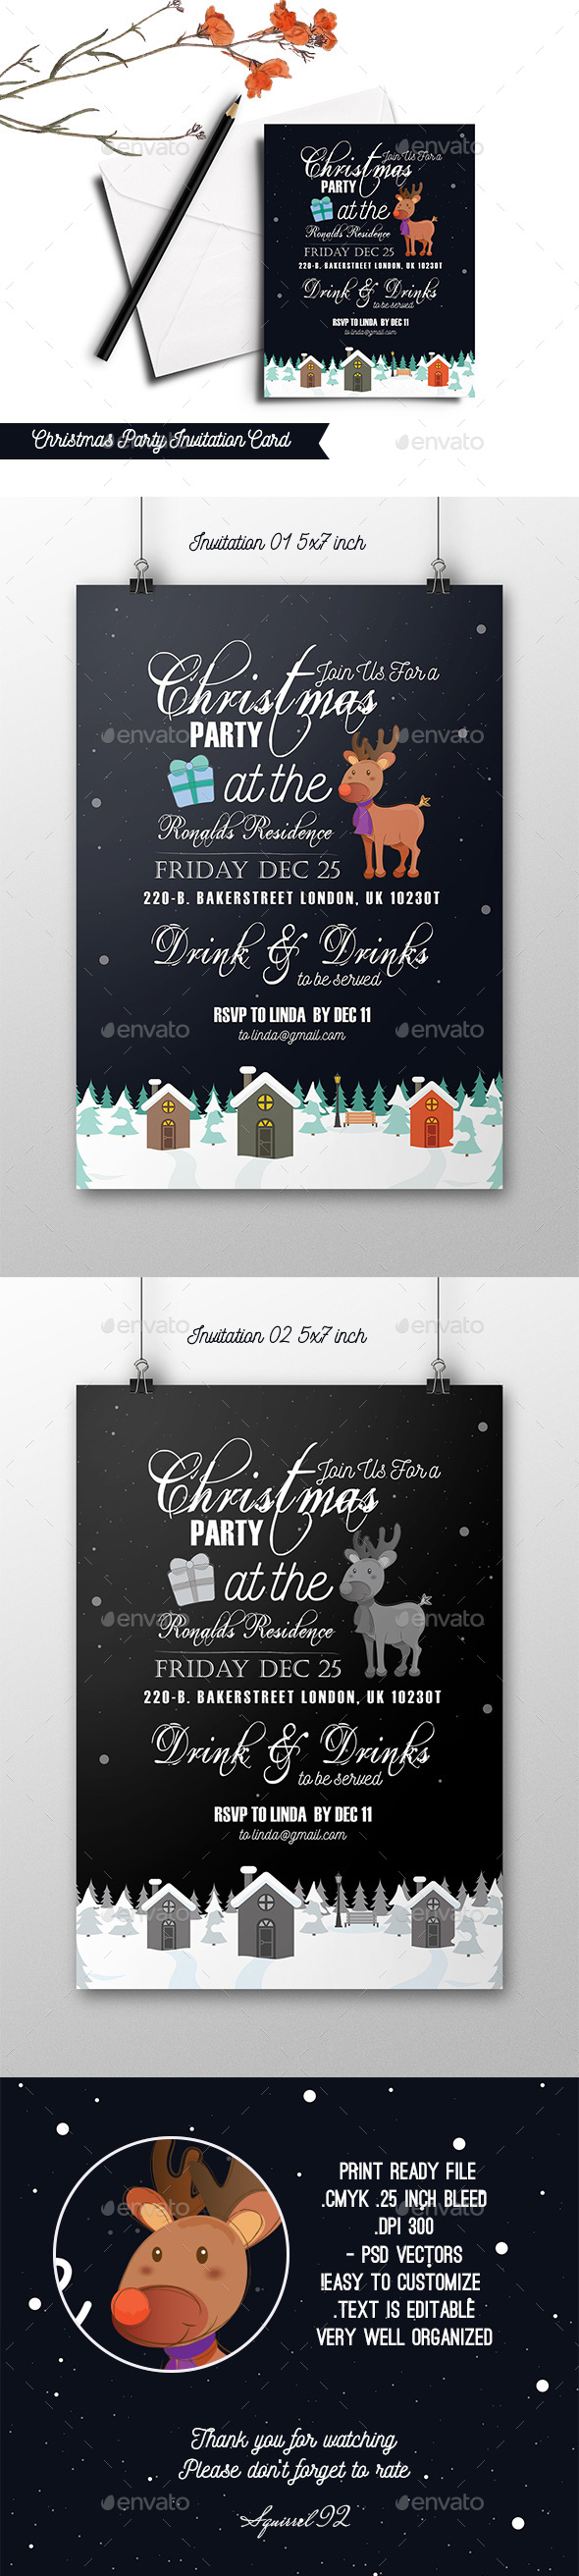 Christmas Party Invitation Card - Invitations Cards & Invites